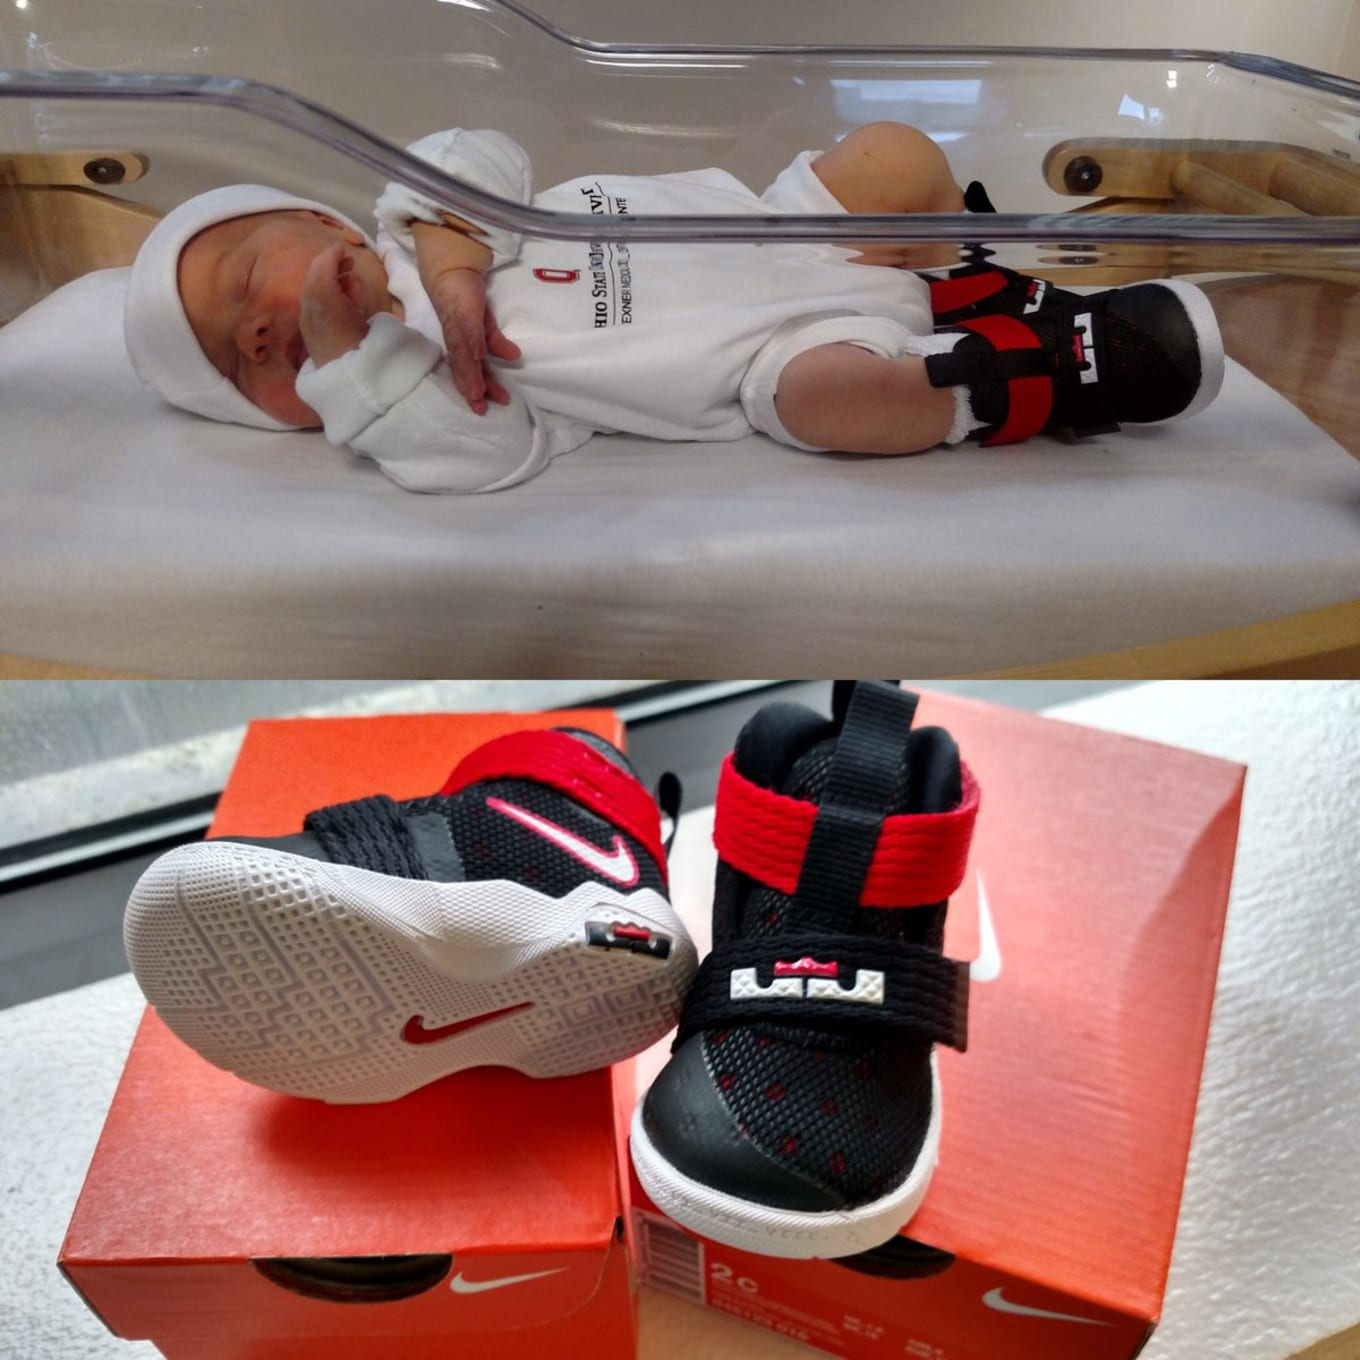 500858d4154 Ohio State University Is Giving Nike Zoom LeBron Soldier 10s to Newborn  Babies